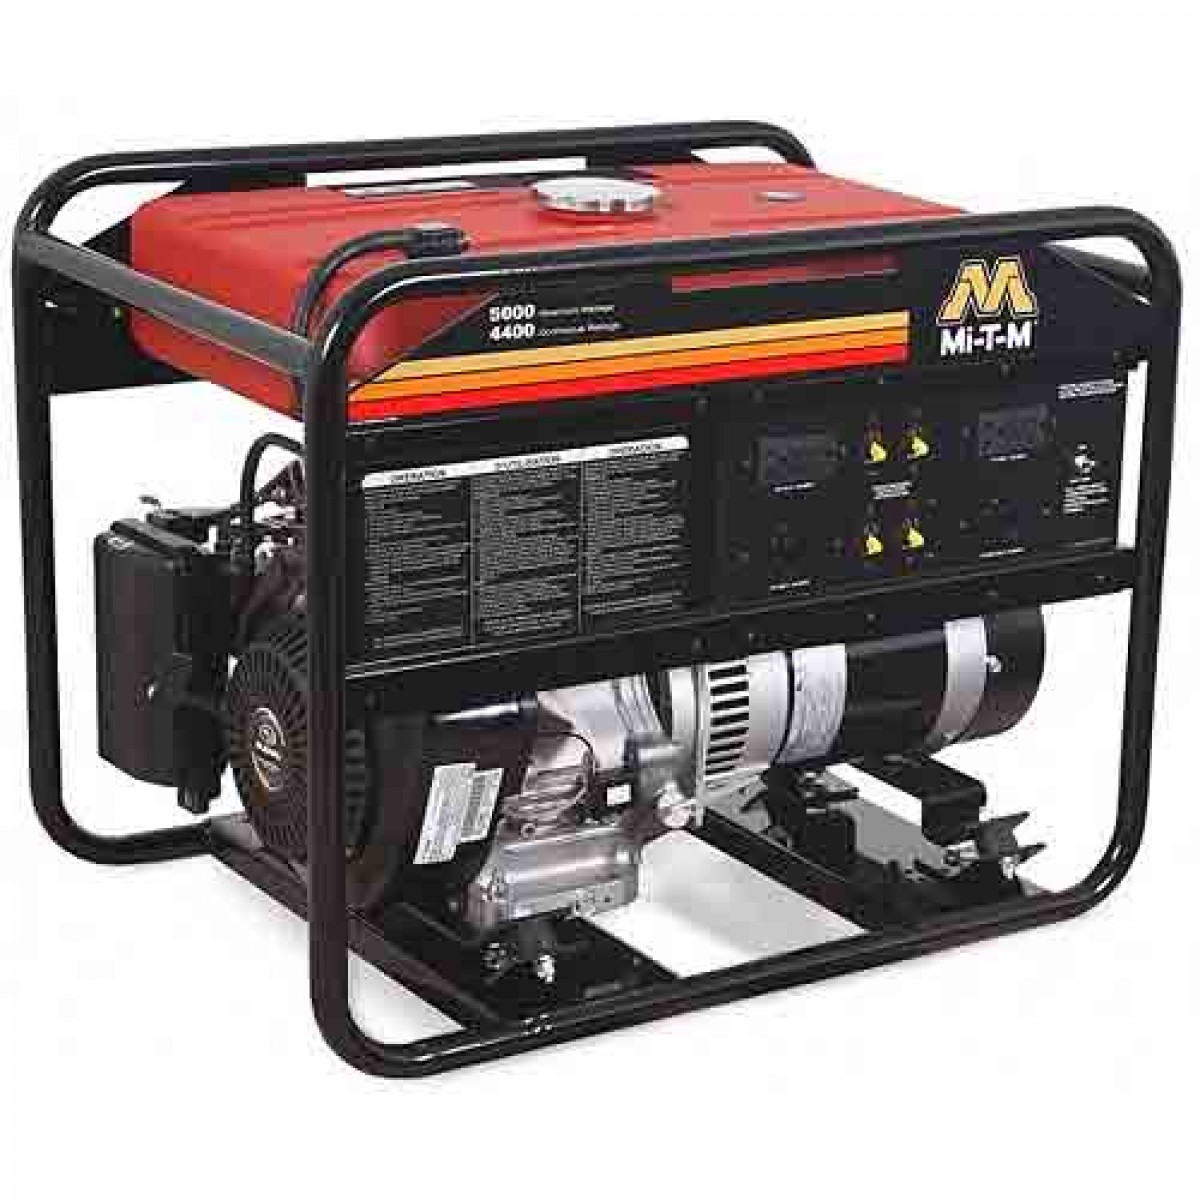 Wonderful Portable Air Compressors, Generators And Power Inverters